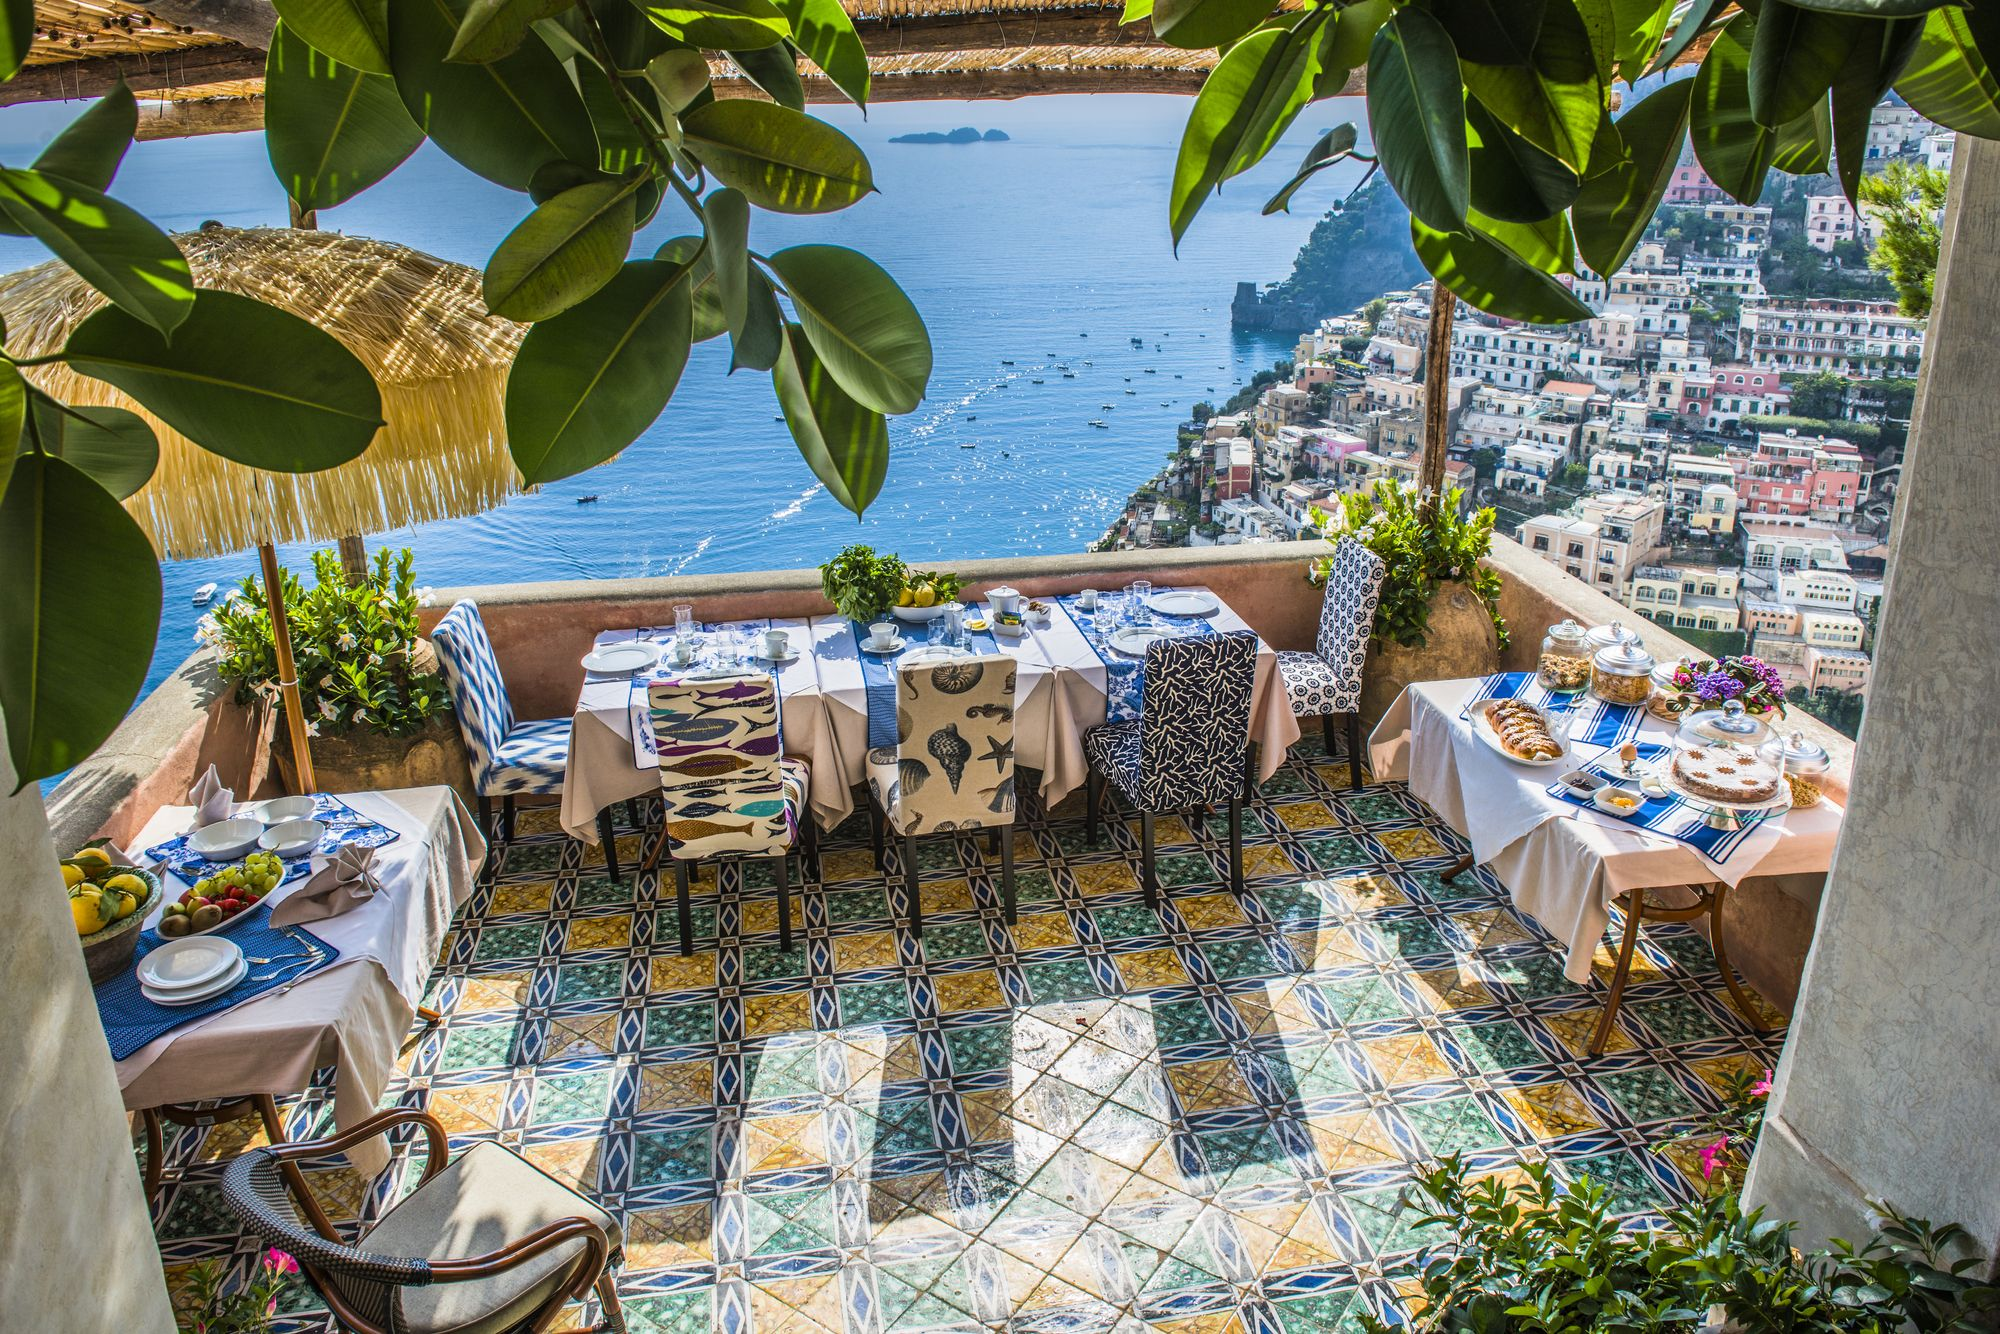 positano amalfi coast luxury villa with private pool, italy